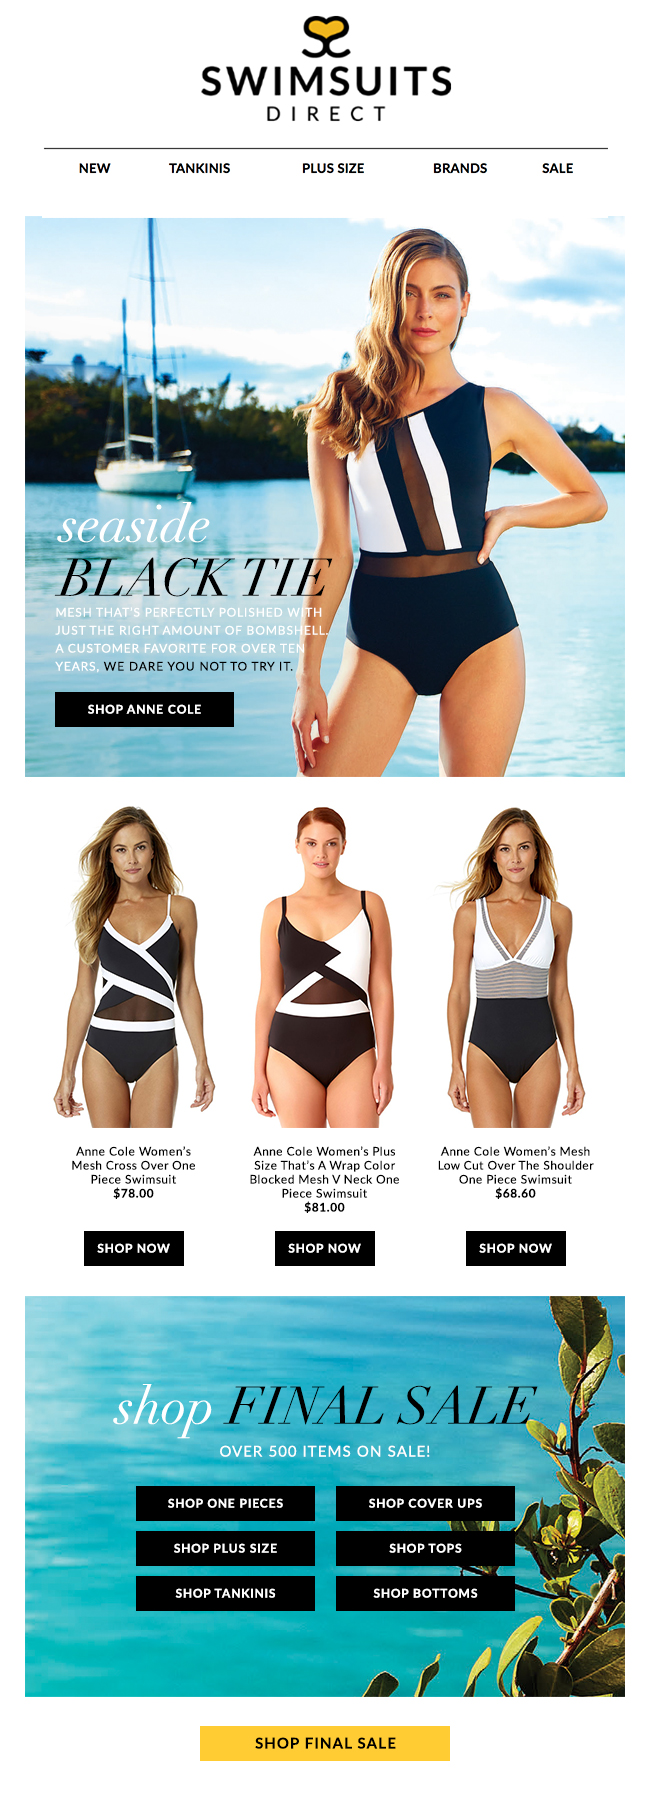 SwimsuitDirect_AnneCole_Email.jpg